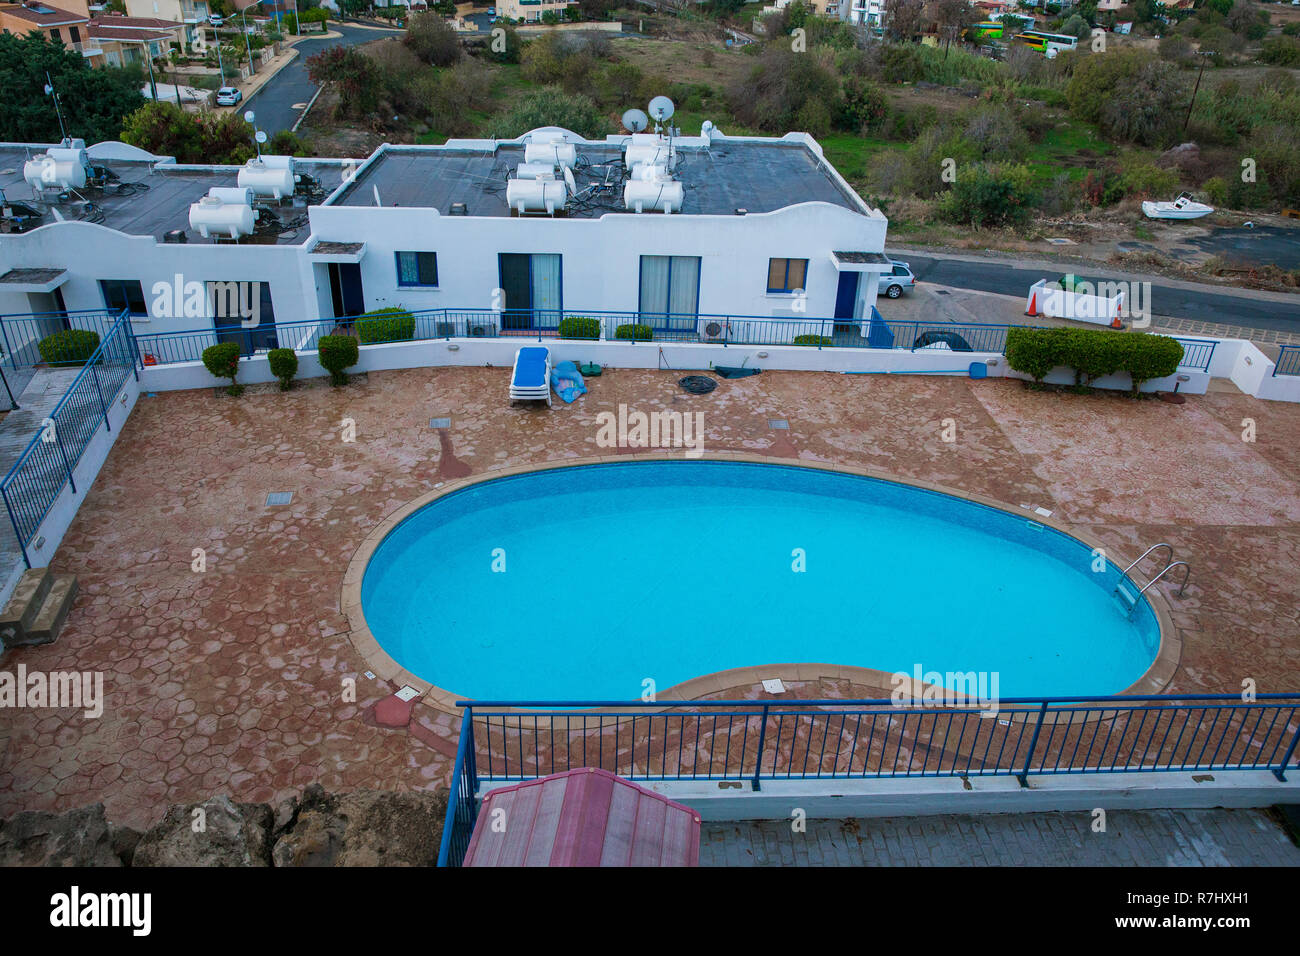 City Paphos, Cyprus. Swimming pool. Nature and buildings on ...